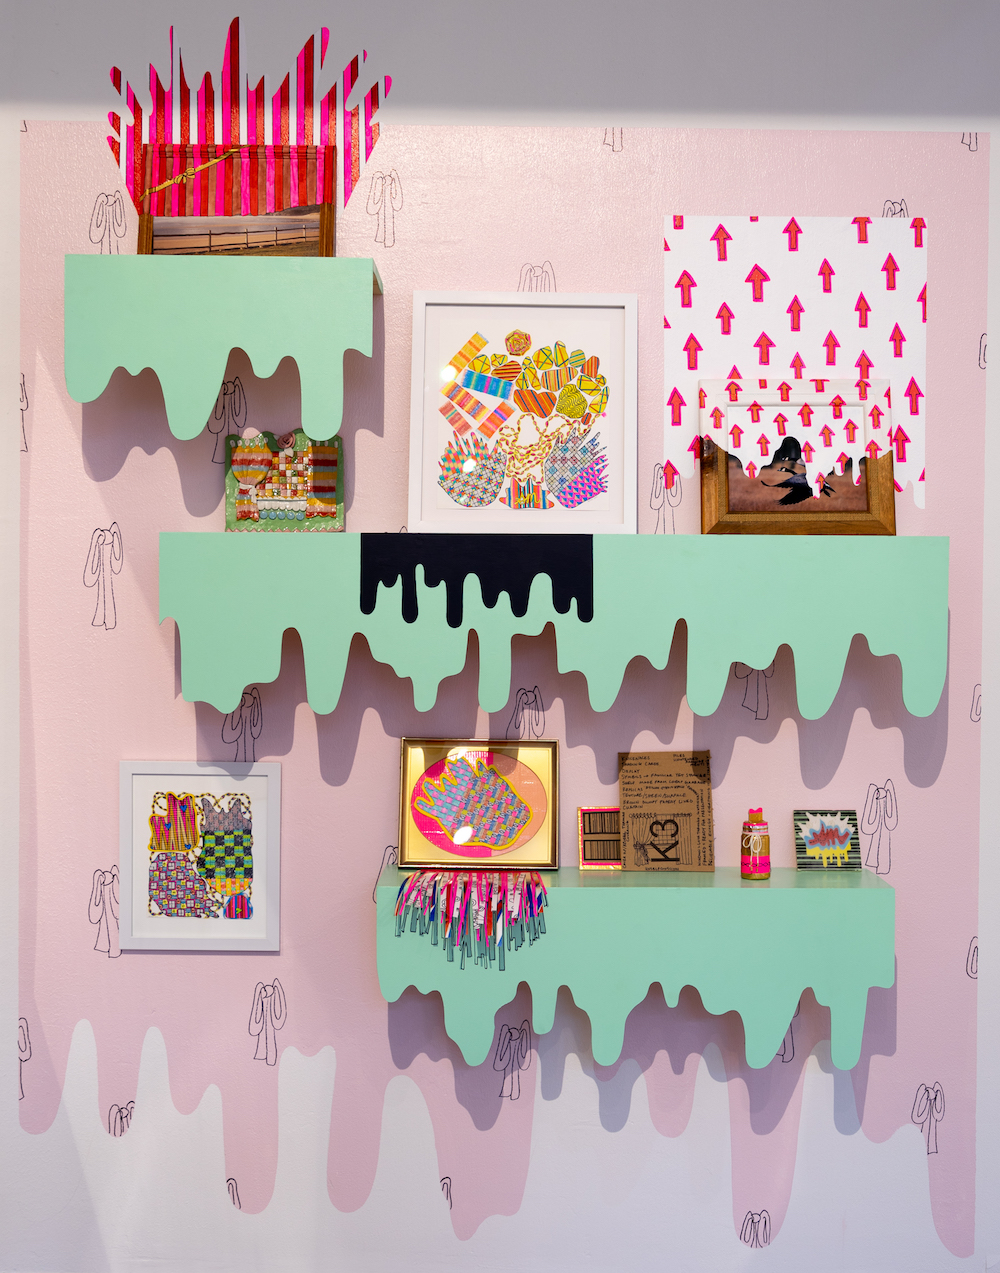 AMoCA Collection  Tchochkes, Trinkets, Knick-Knacks  (site-specific commission for AMOCA) wood, paint, paper, marker, colored pencil, cardboard, clay, modified found-objects 80x68x10 inches, 2018